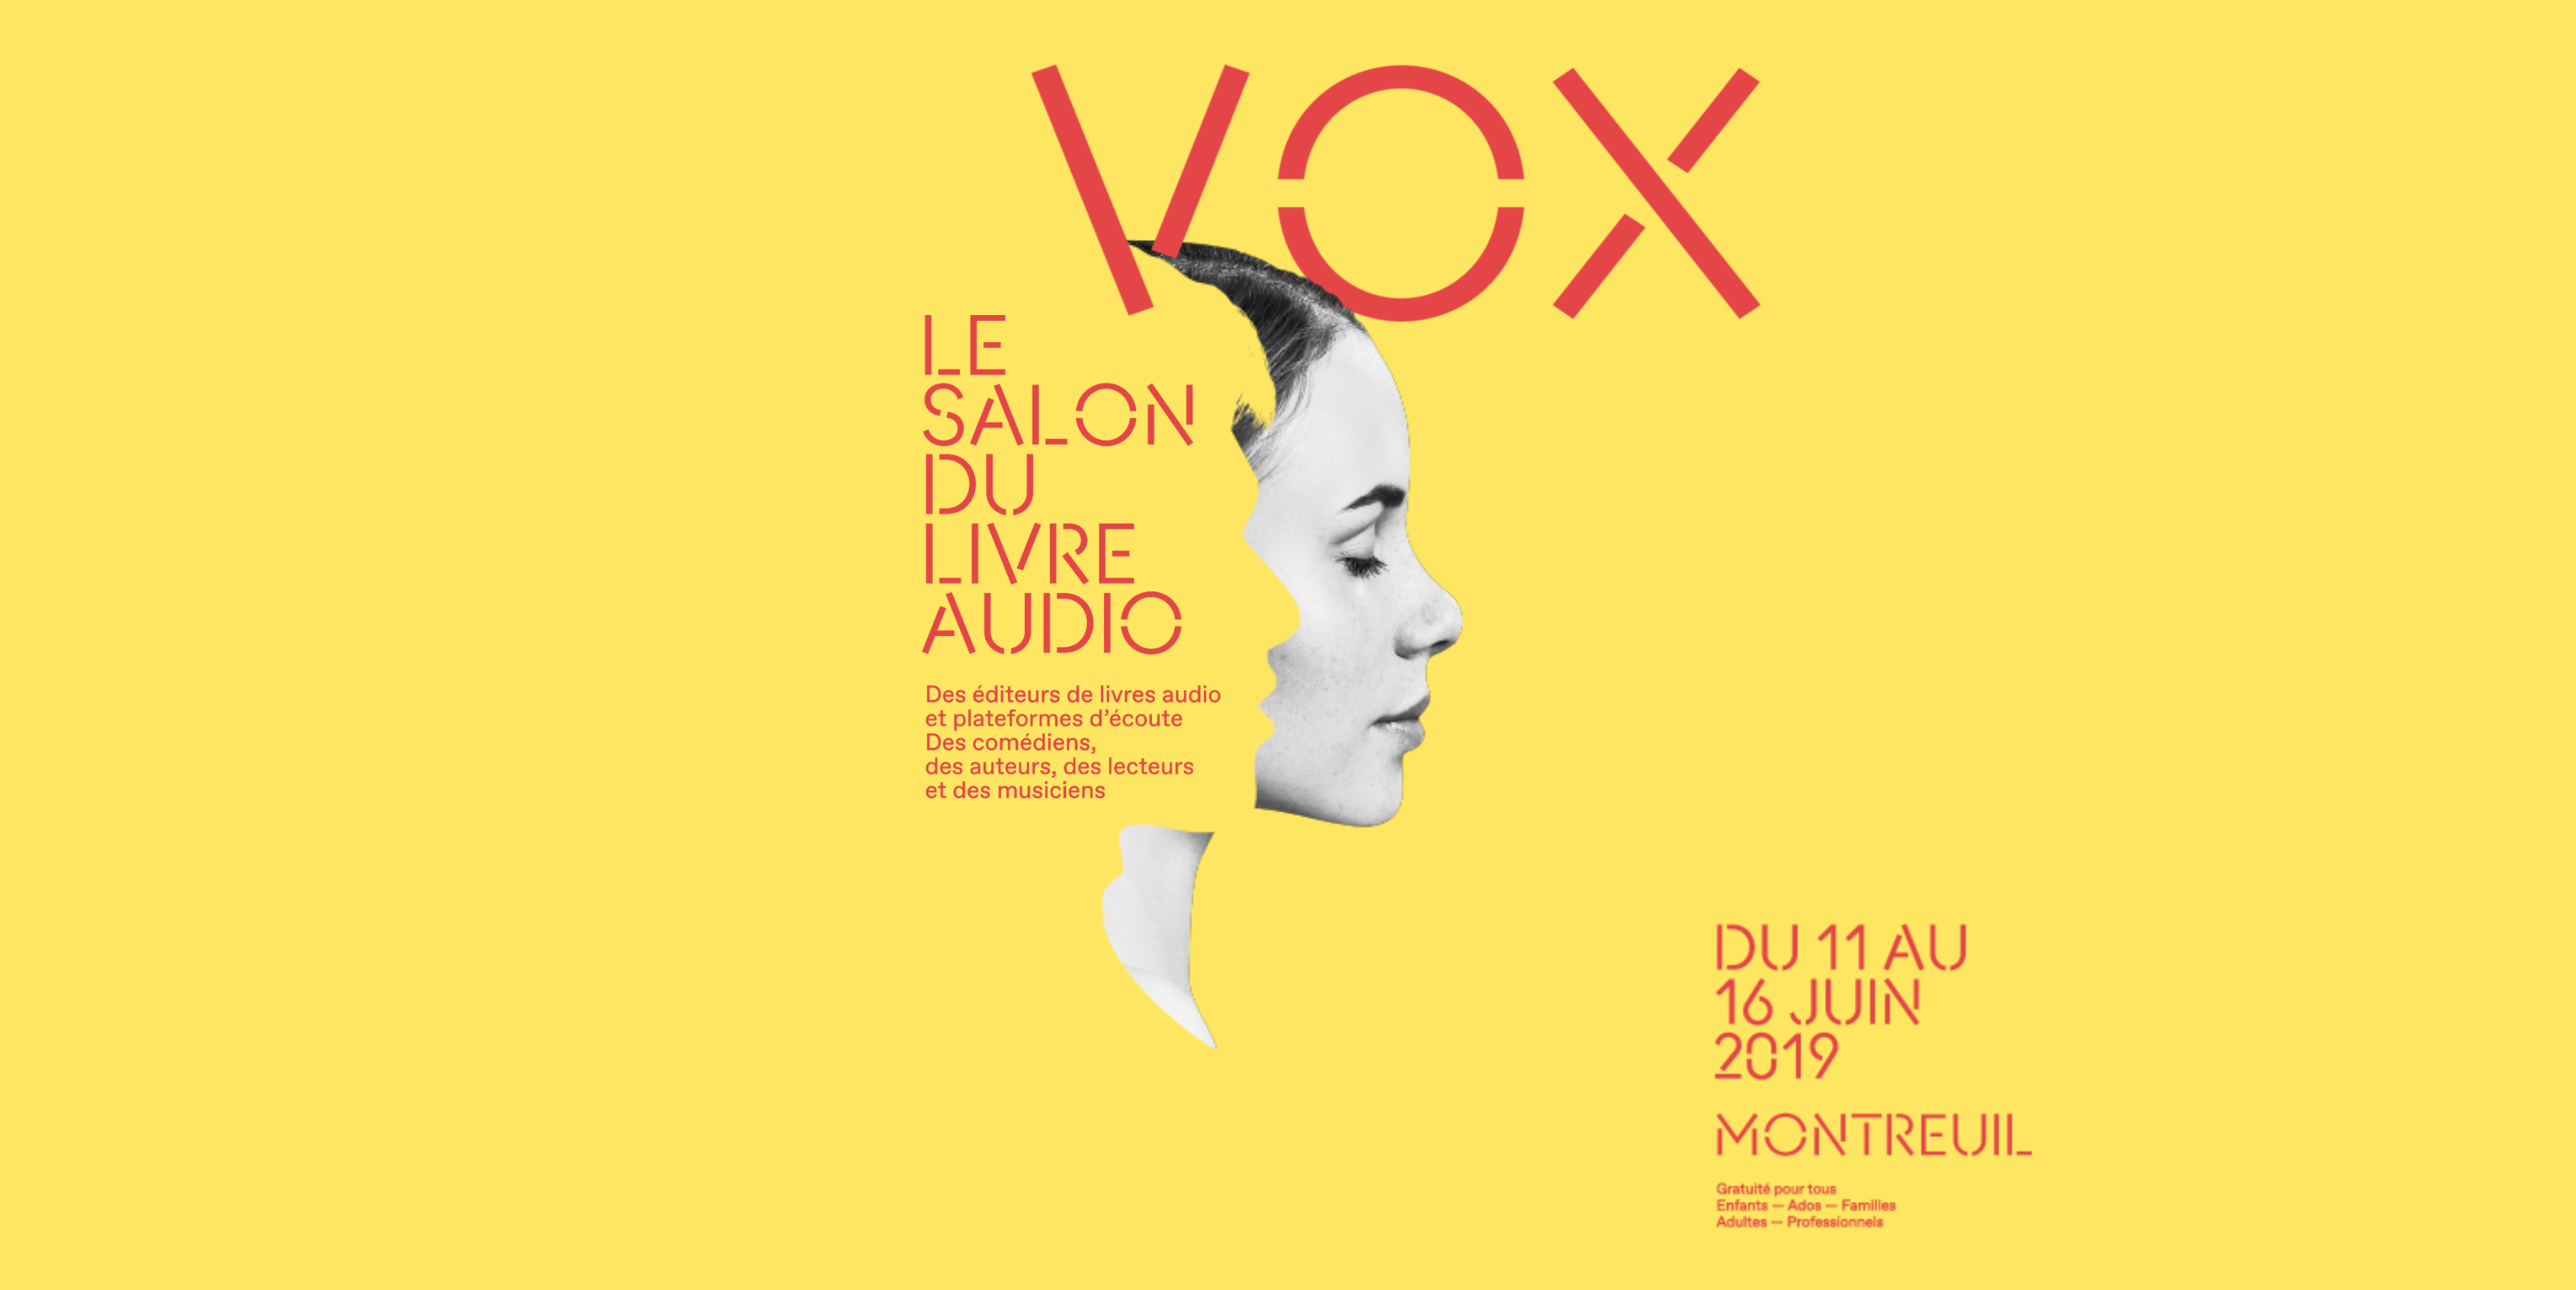 VOX le premier salon du livre audio